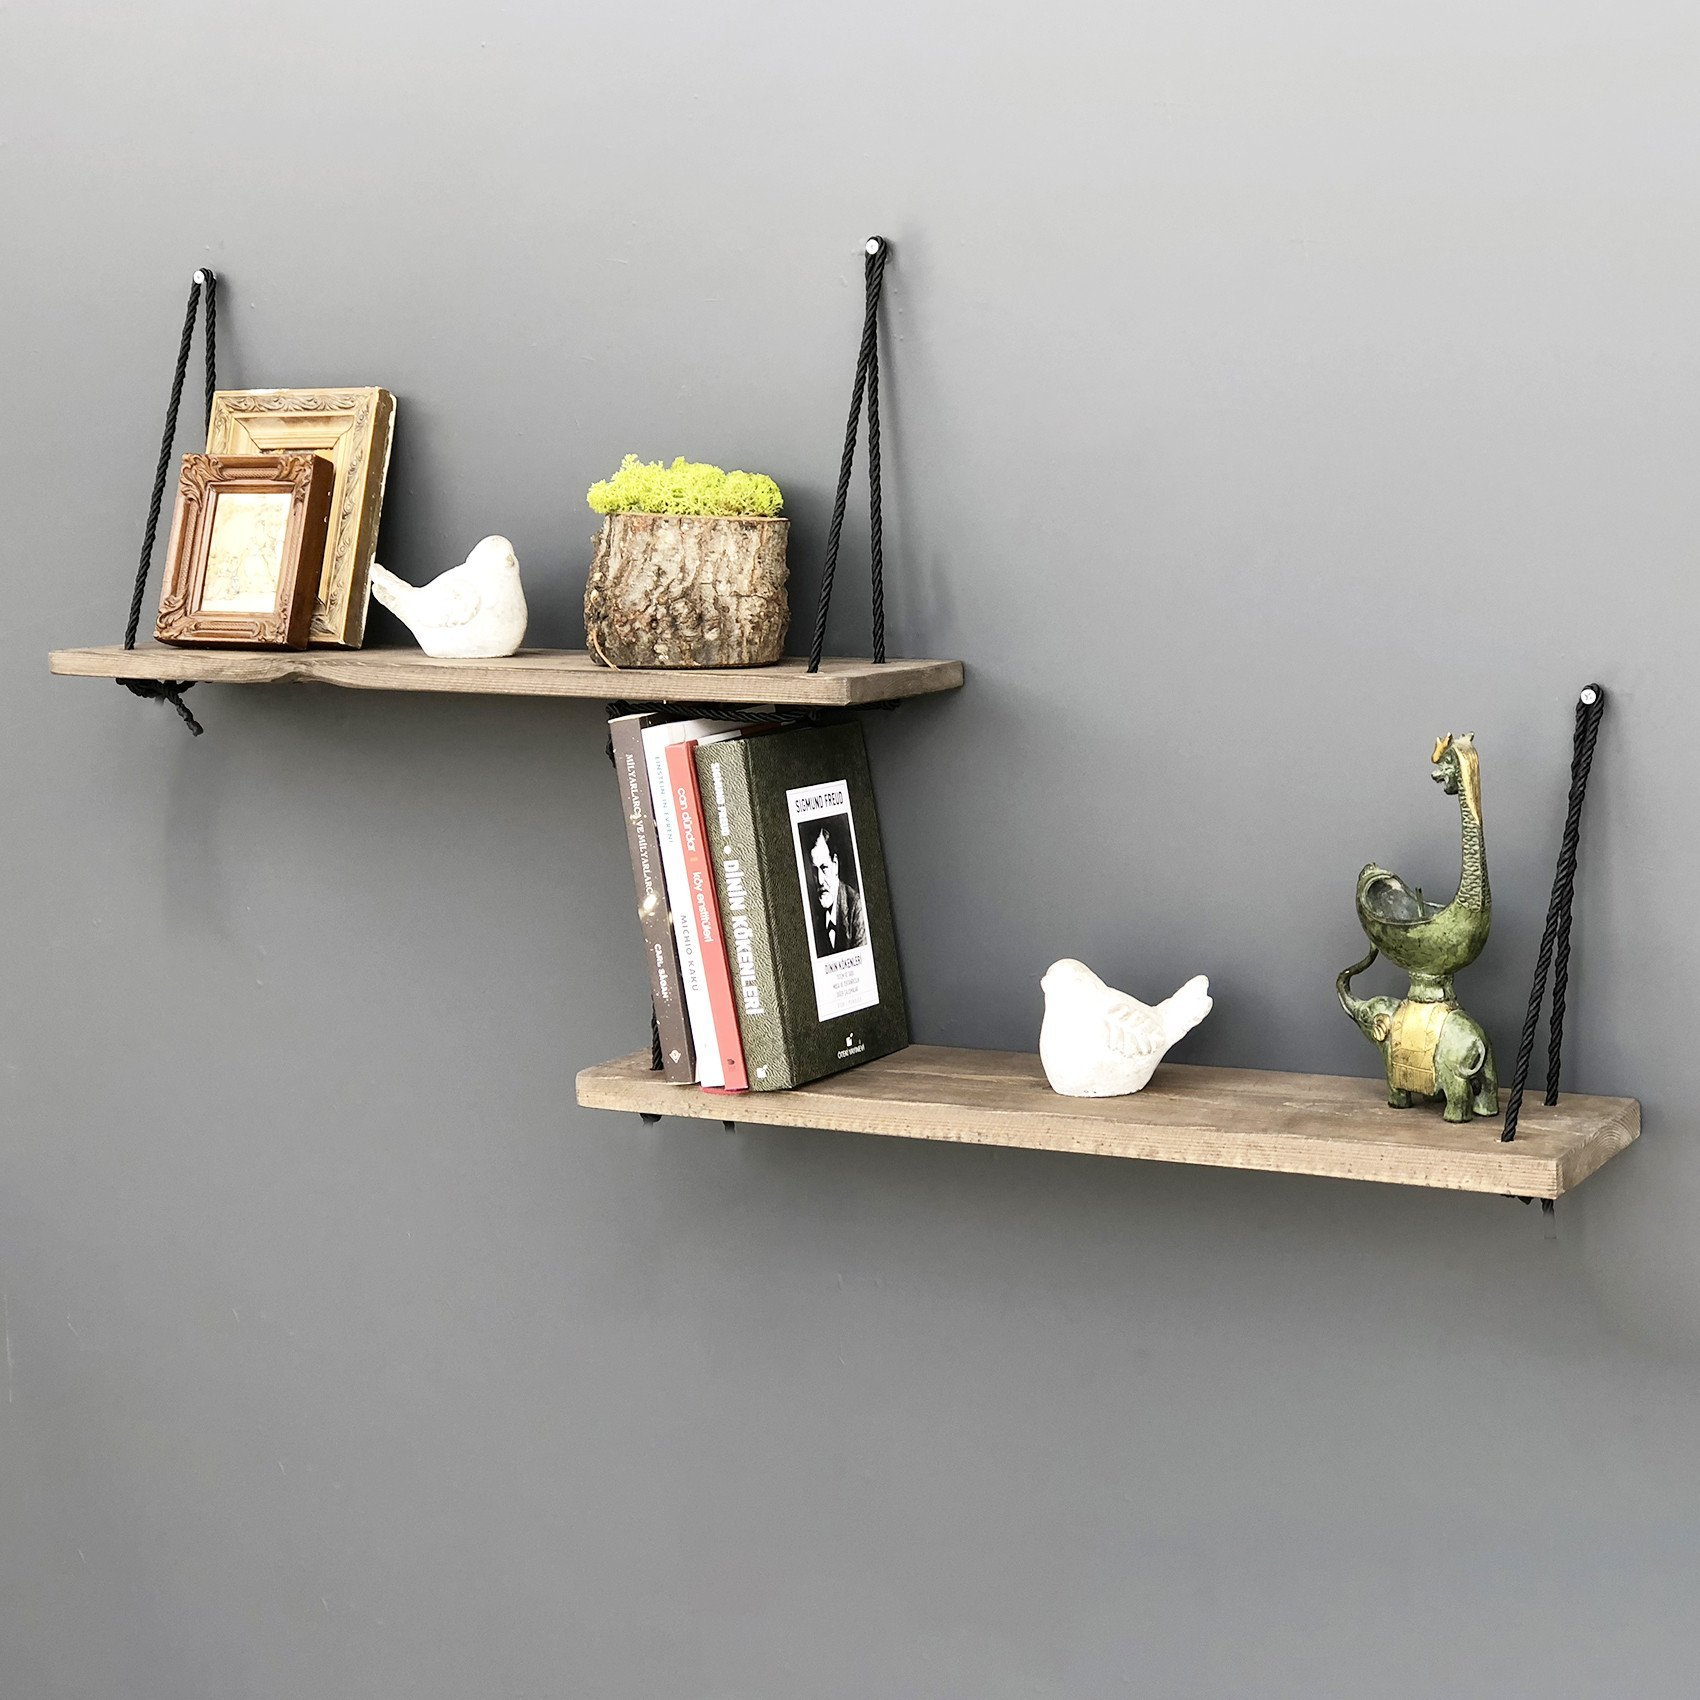 LaModaHome Handmade Wall Shelf with Rope, 100% Solid Wood - Size (23.6'' x 0.6'' x 5.1''), Easy to Hang with Invisible Brackets, Wall Mounted Floating Shelves for Home & Office